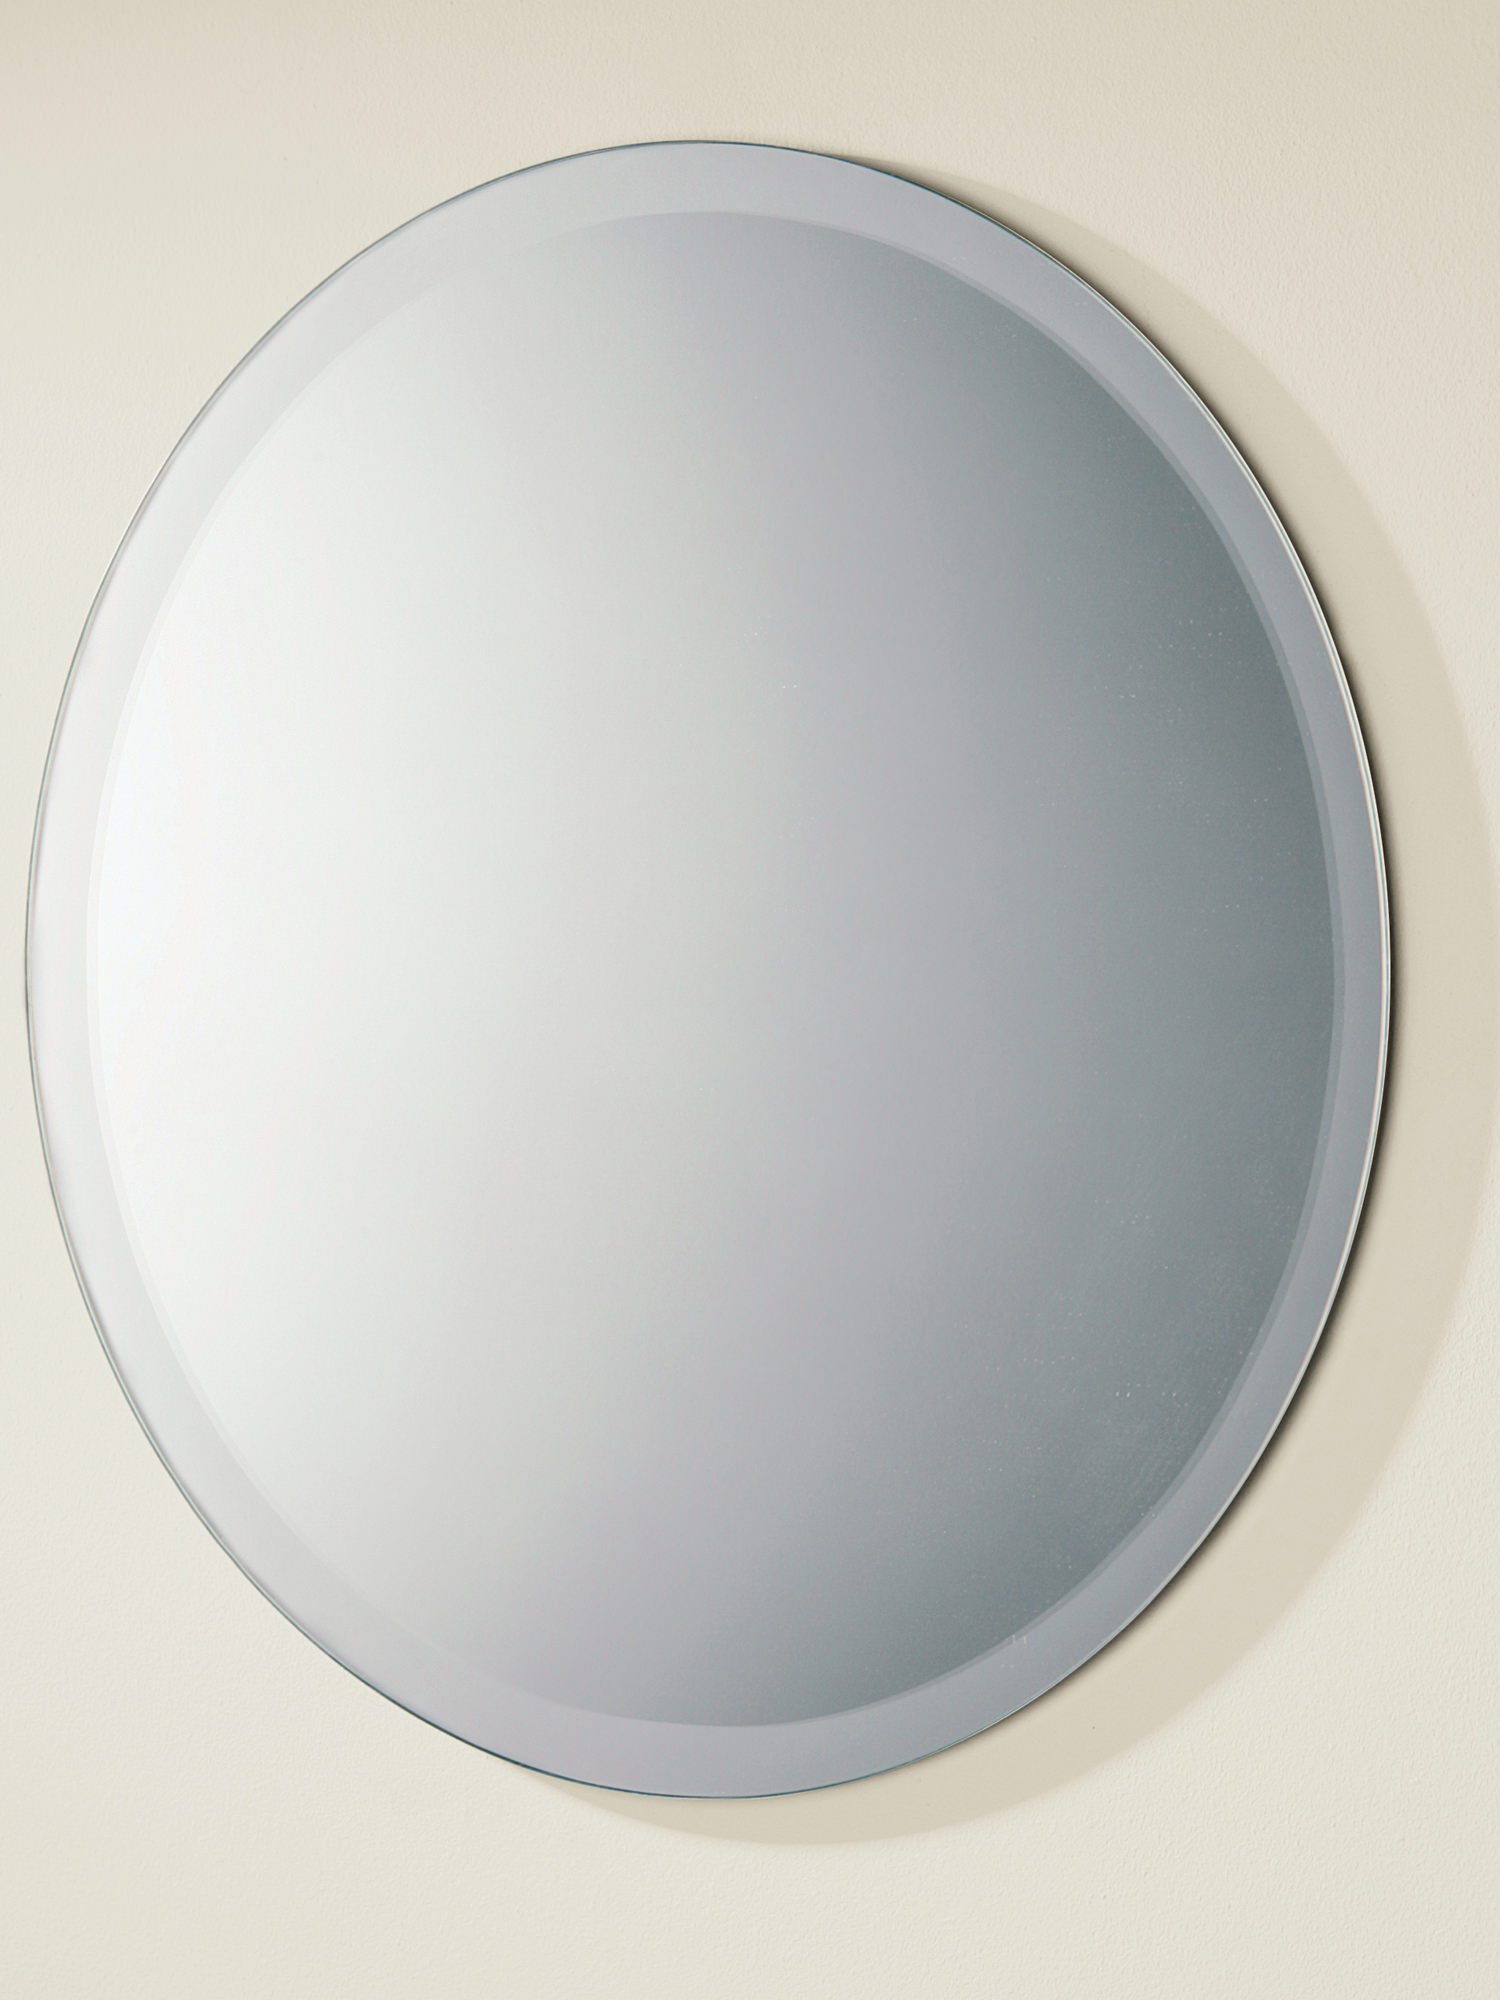 Bevelled Bathroom Mirror Hib Rondo Circular Mirror With Wide Bevelled Edge 61504000